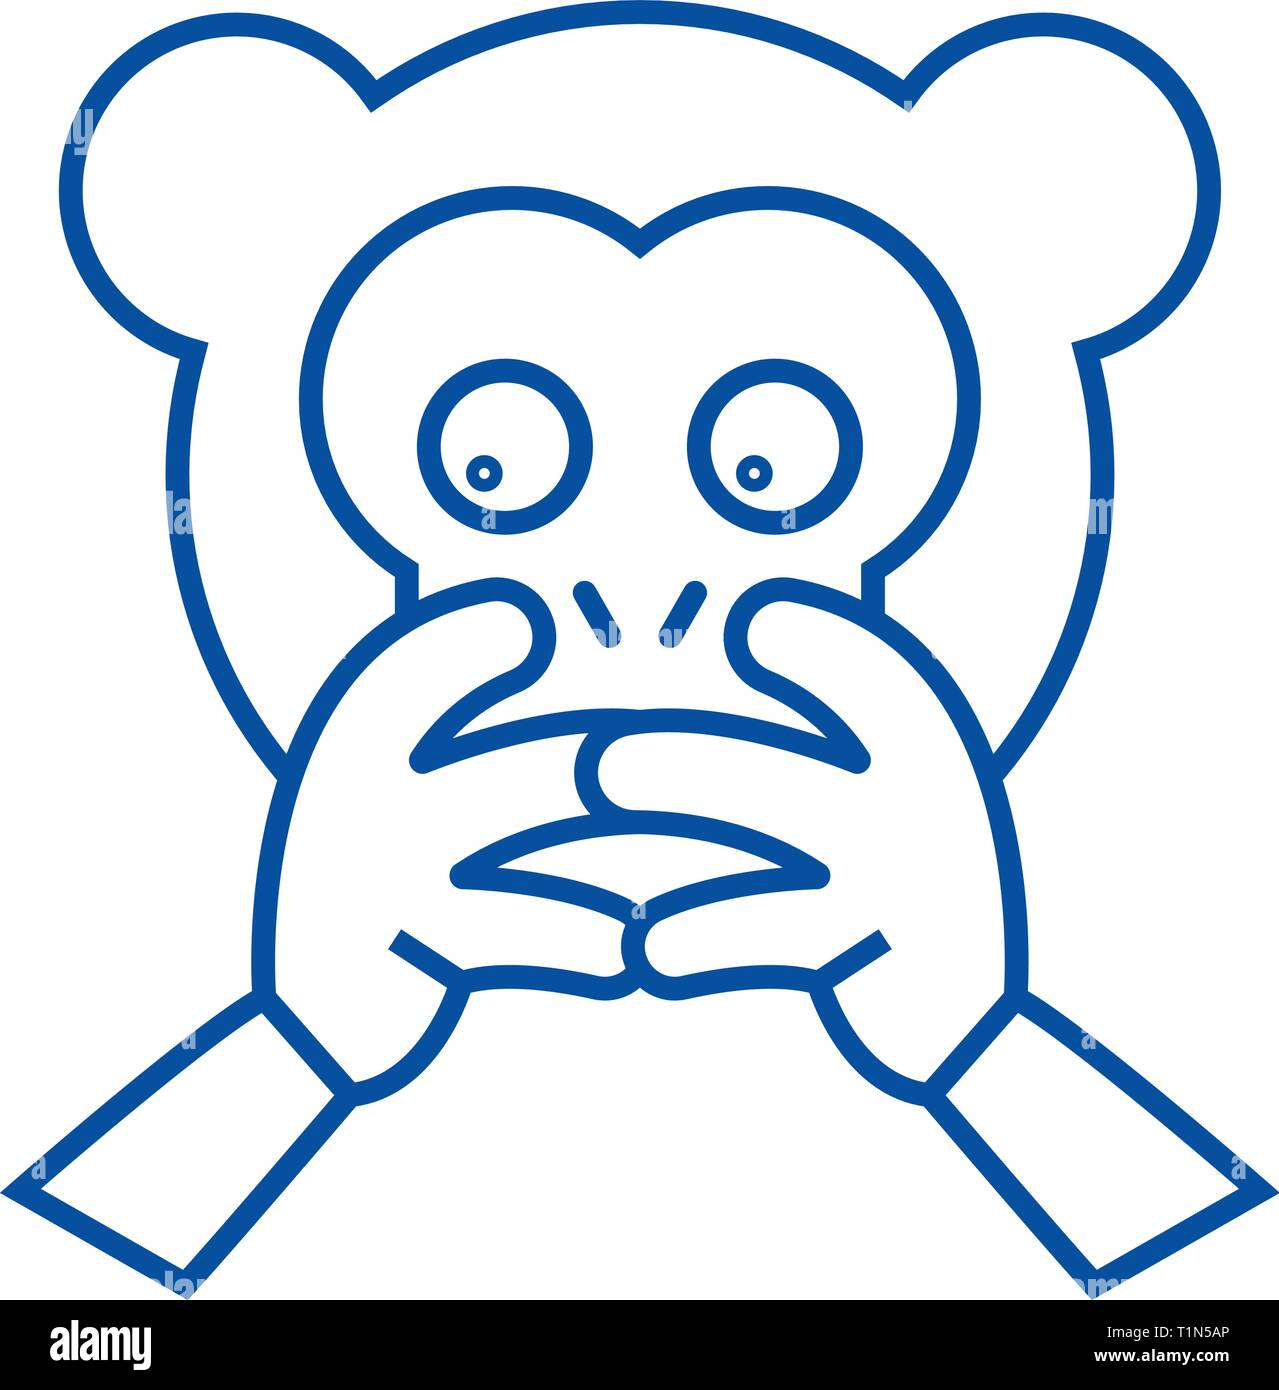 Animal Emoji Vector High Resolution Stock Photography And Images Alamy Unique lion face emoji stickers designed and sold by artists. https www alamy com hear no evil emoji line icon concept hear no evil emoji flat vector symbol sign outline illustration image242025022 html